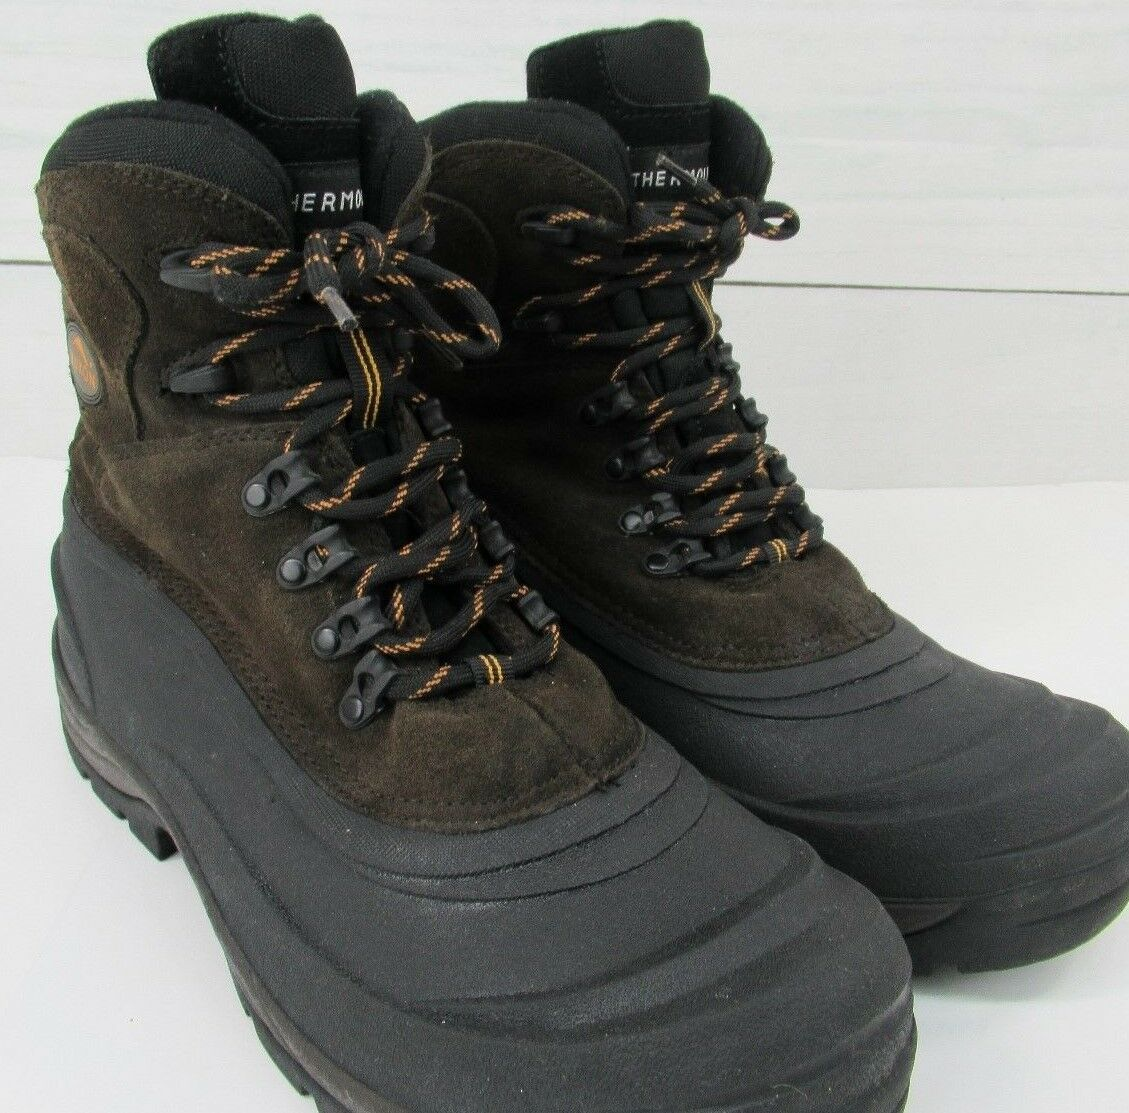 YUKON Men's WHISTLER II Pac Snow Suede Leather   Rubber waterproof Winter Boots